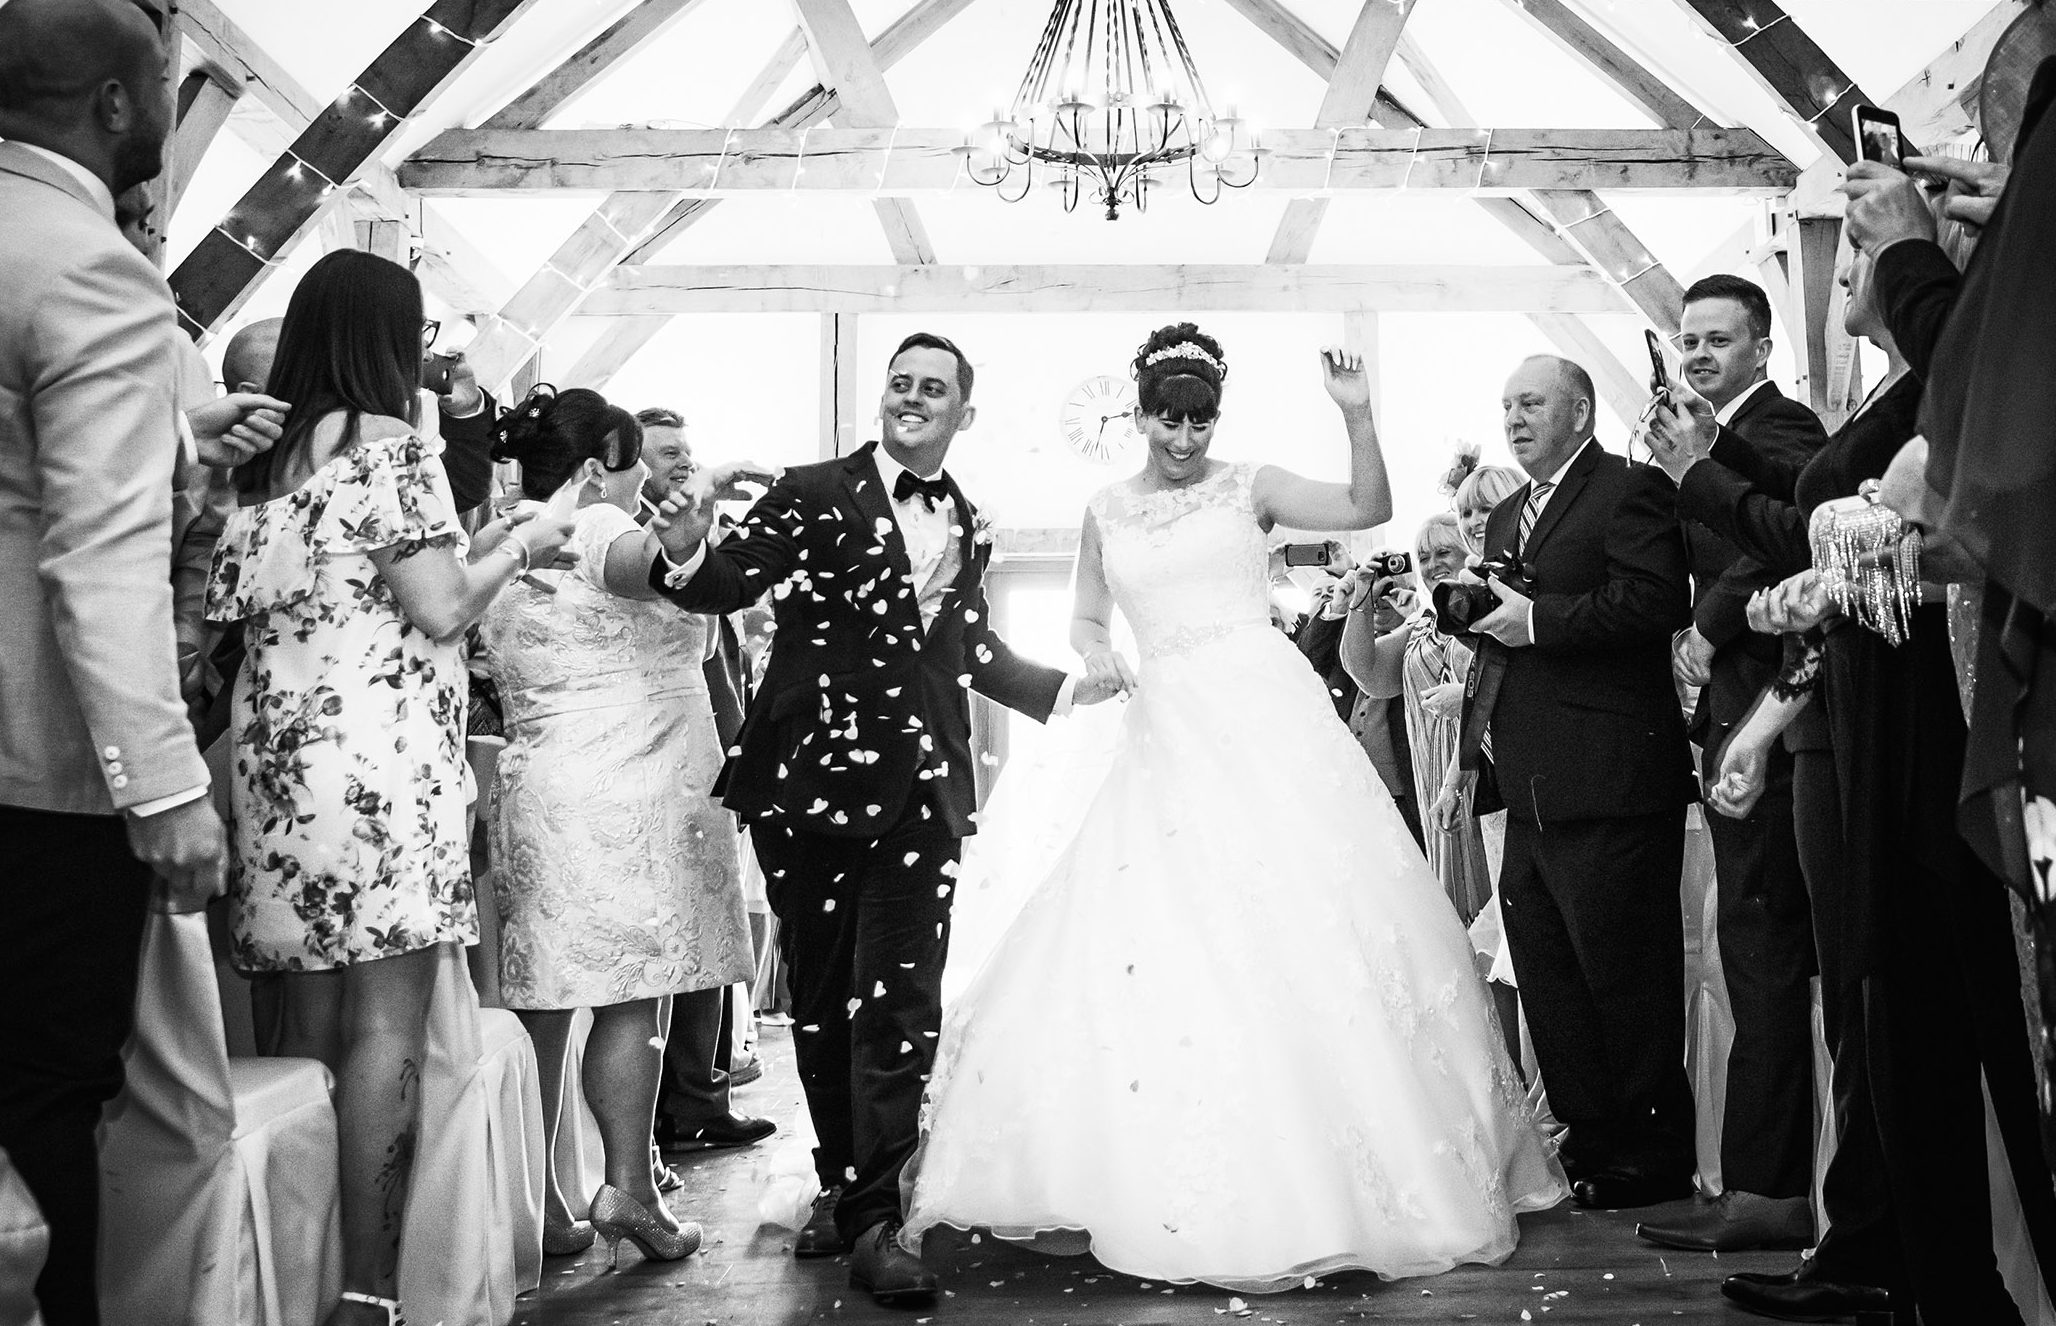 The bride and groom walk down the aisle after their wedding at Sandhole Oak Barn, Cheshire